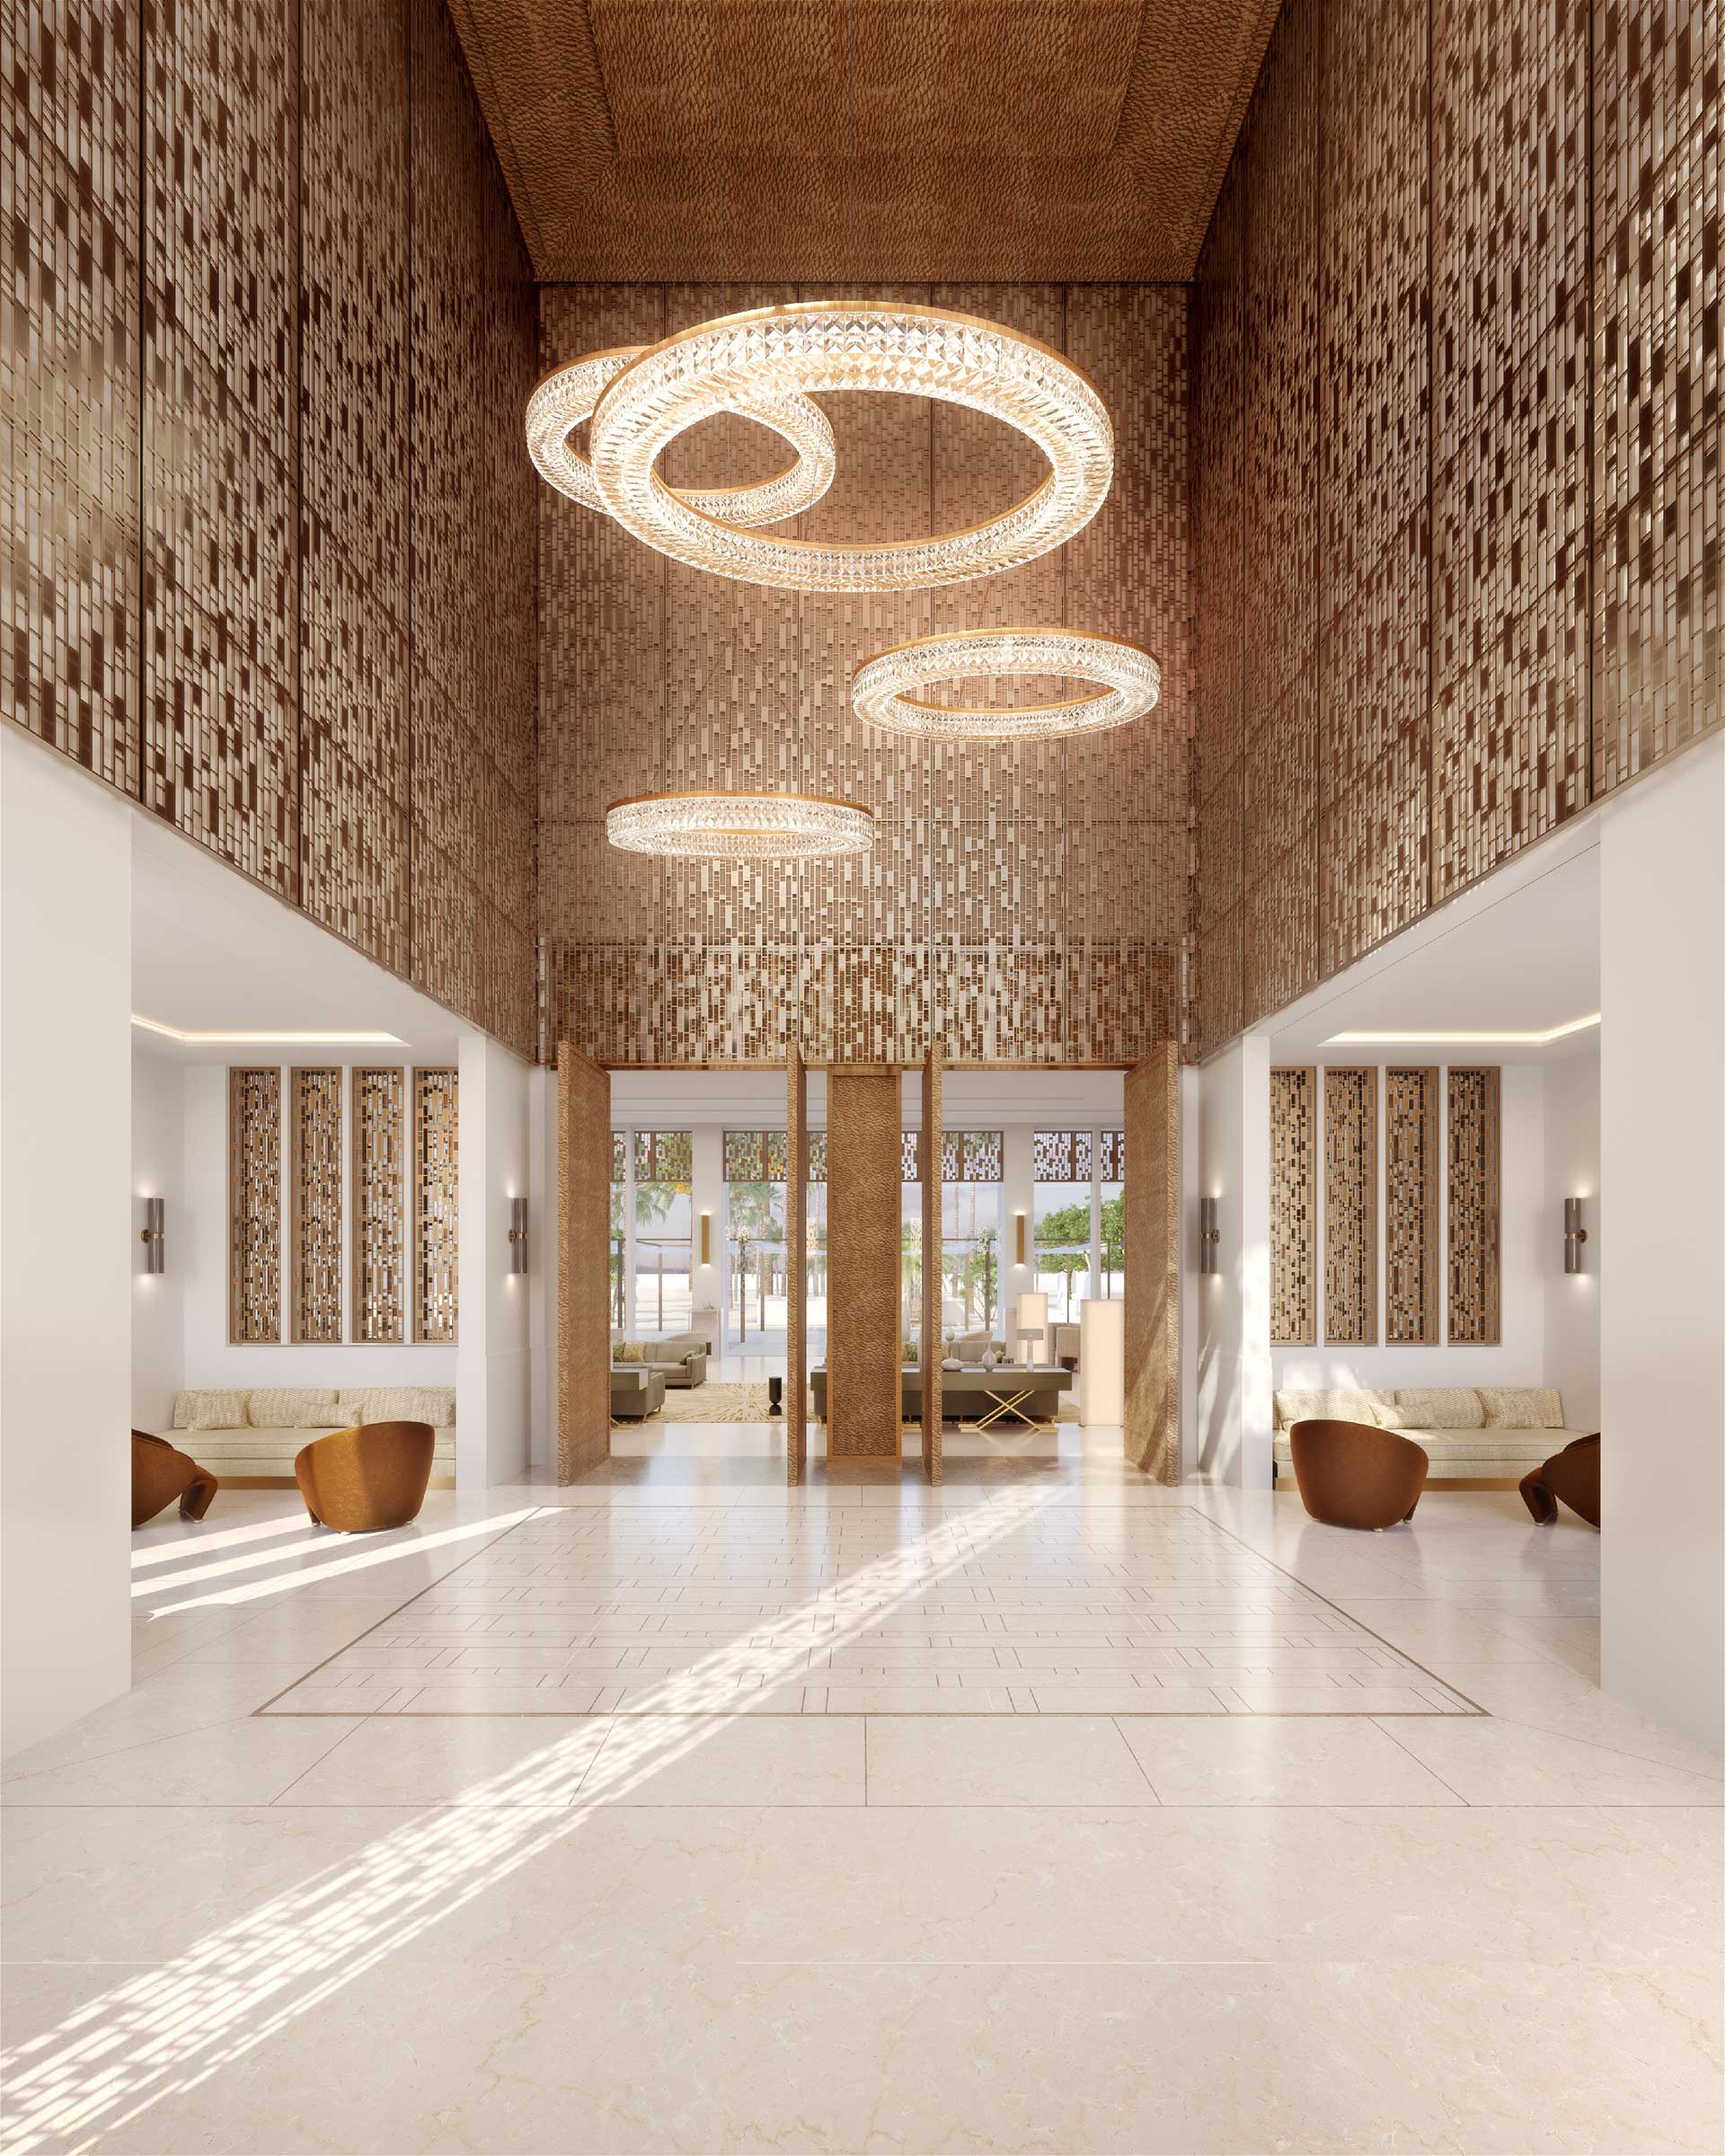 3D render of a luxurious hall in a villa